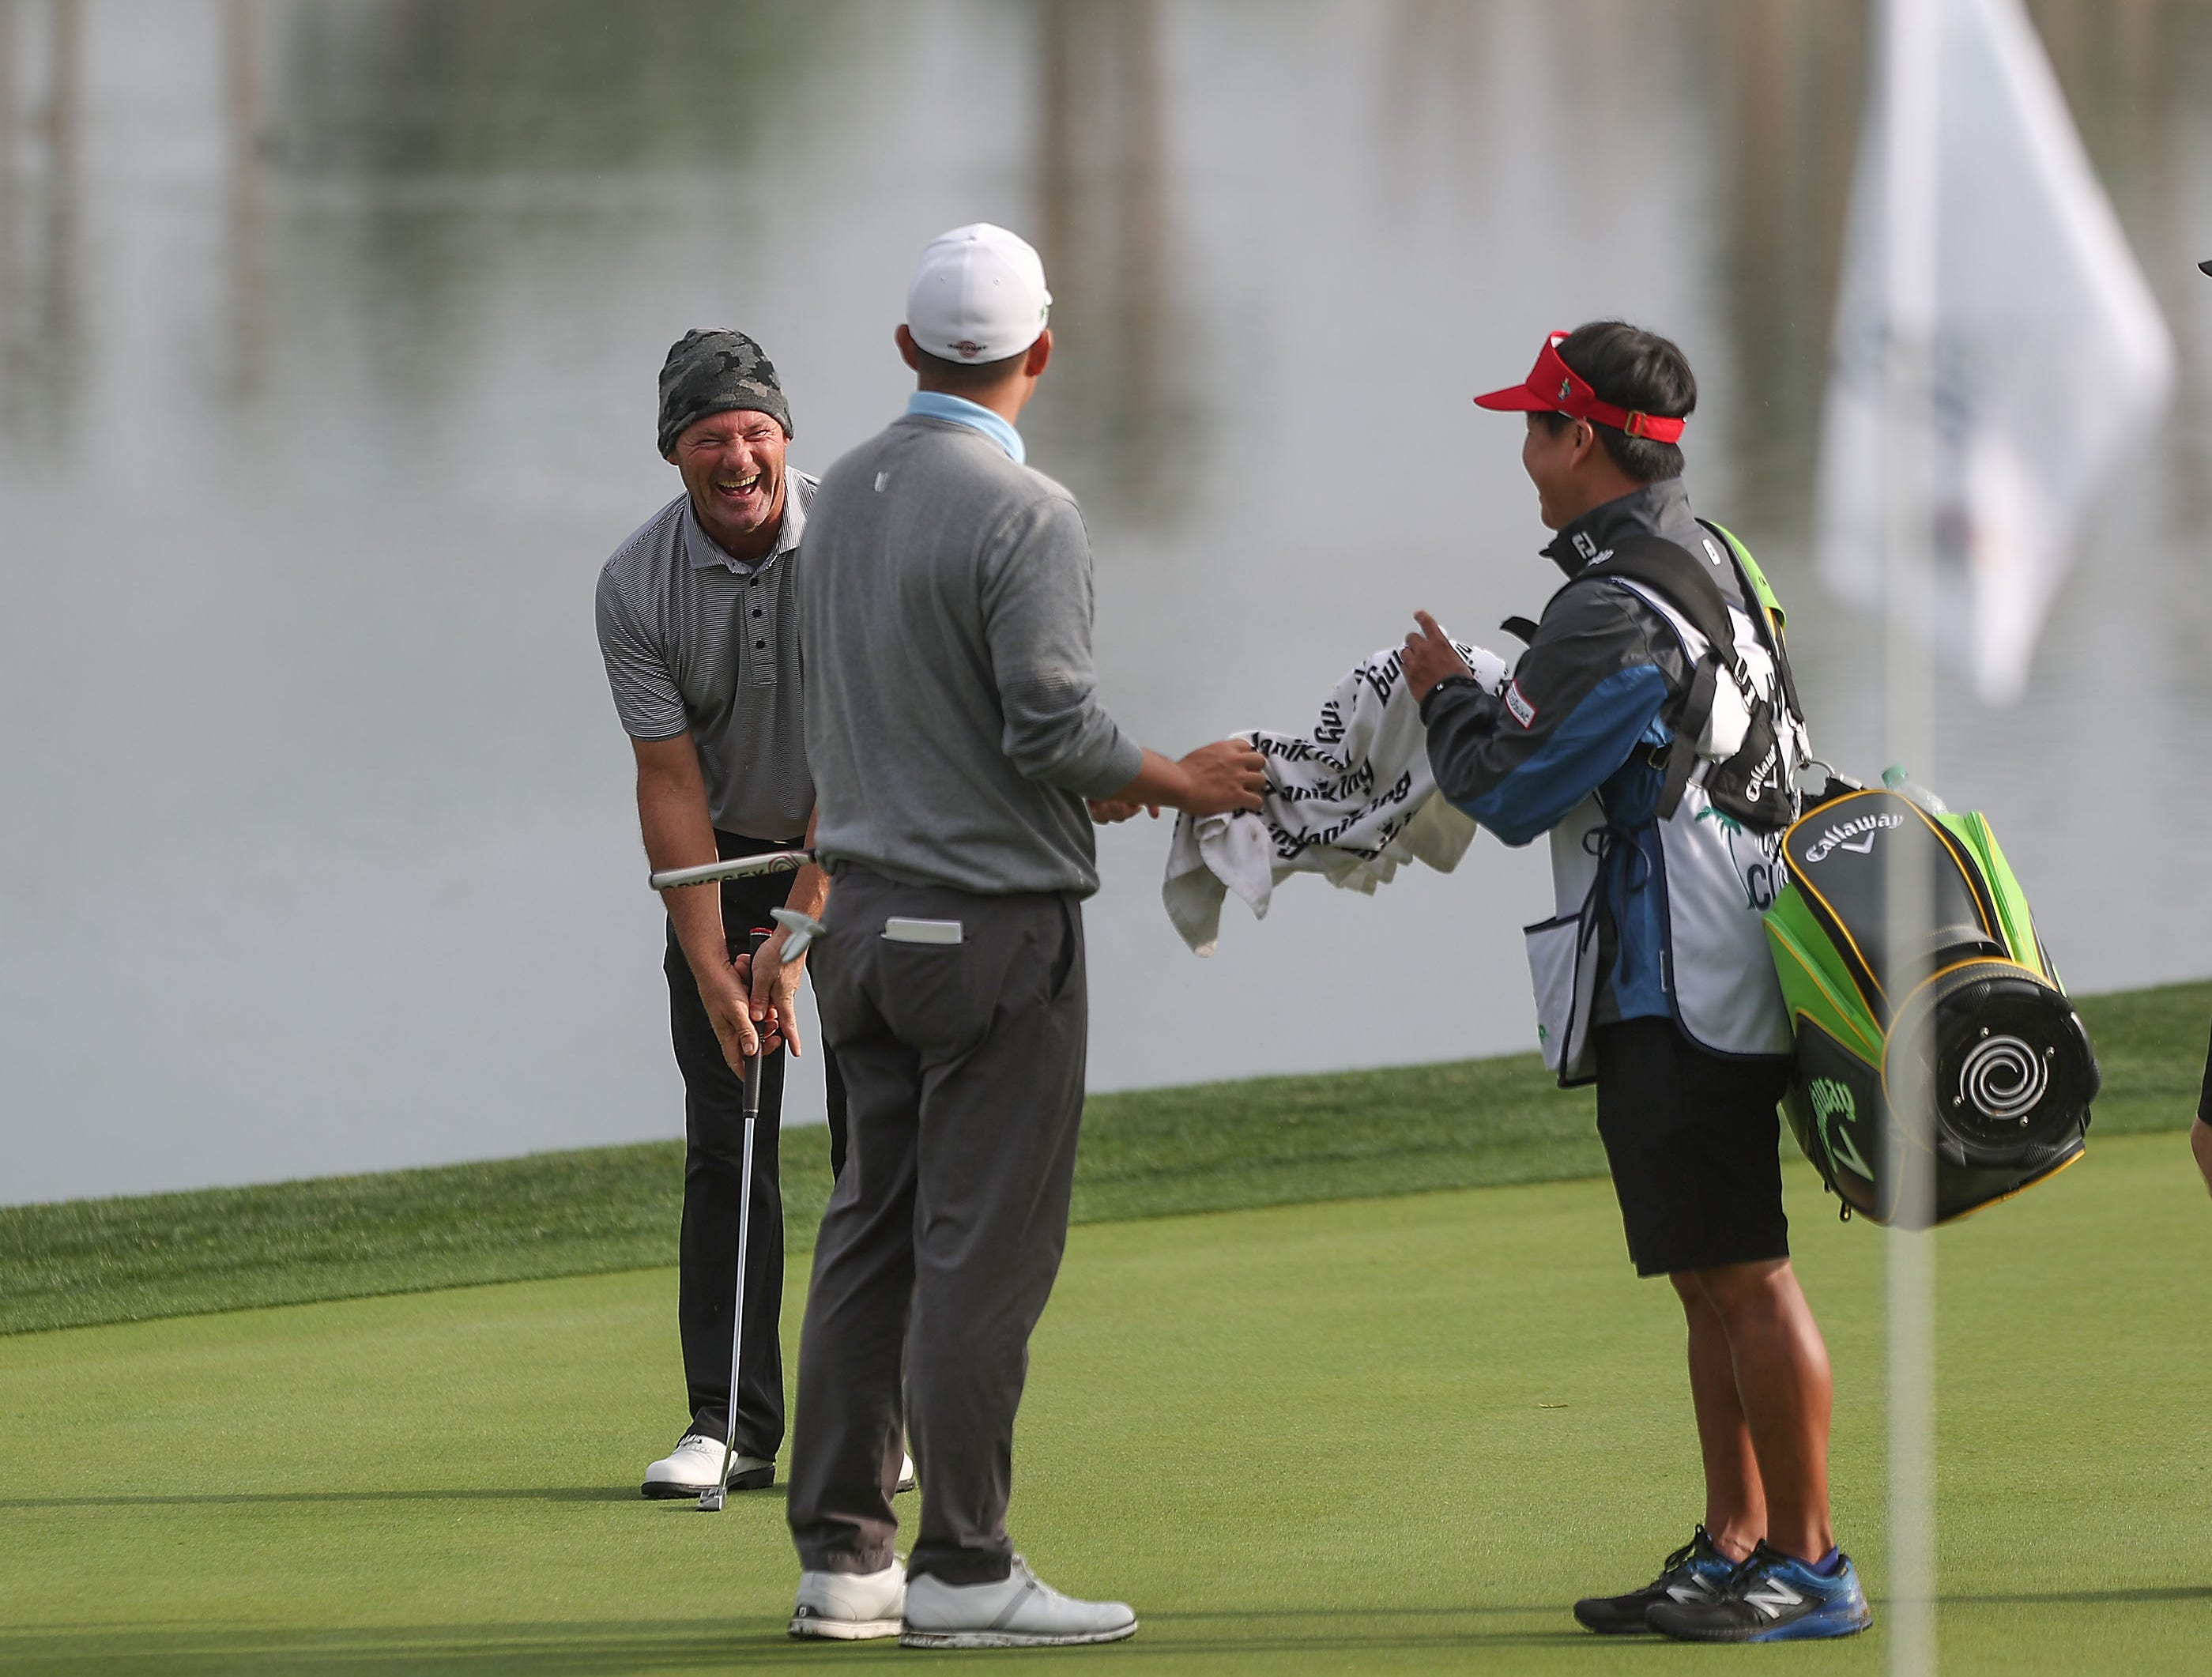 Alex Cejka, left, laughs on the 18th green with John Huh center during the Desert Classic at PGA West, January 17, 2019.